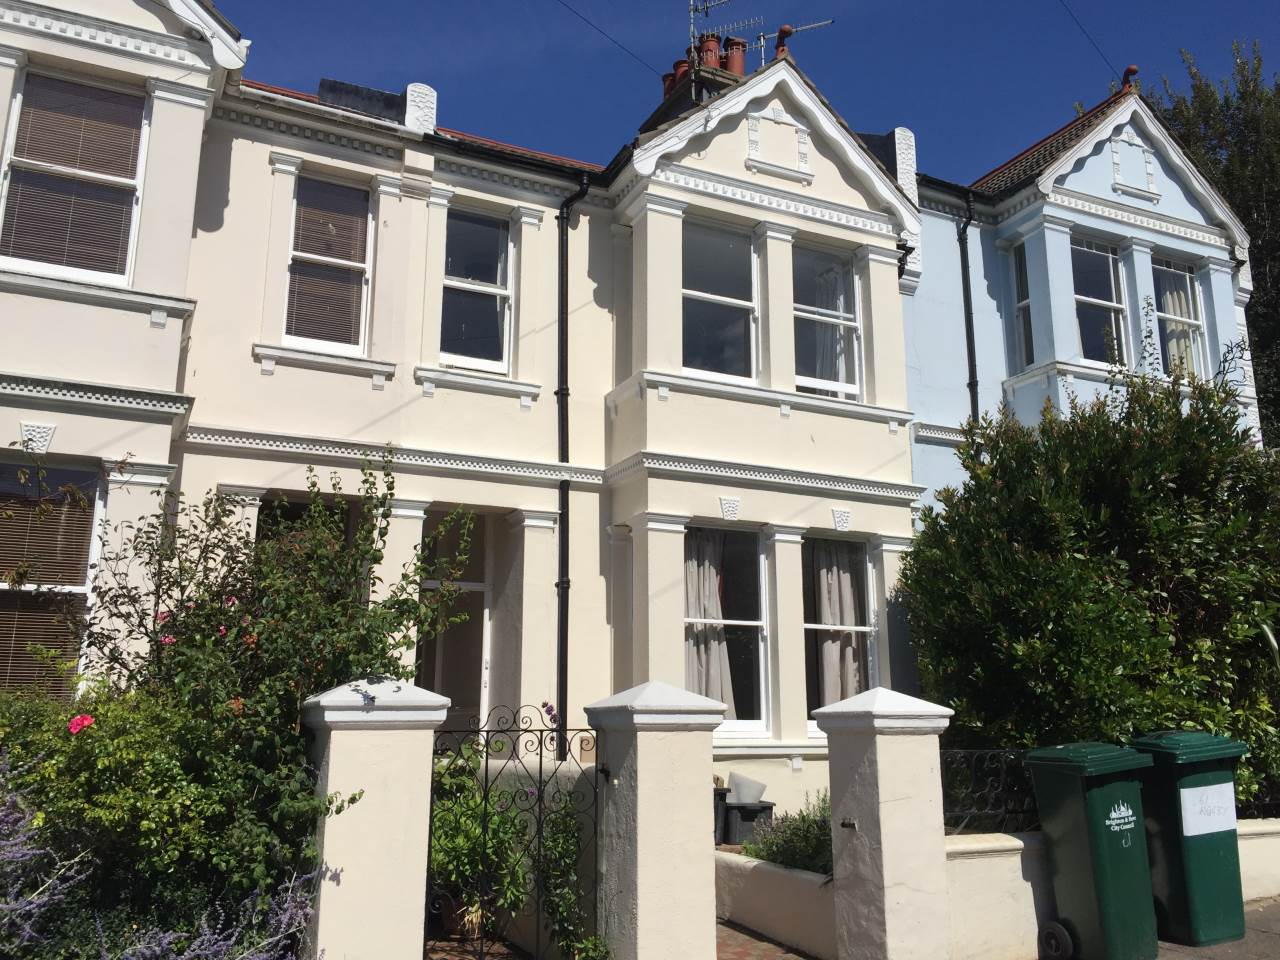 6 bed house to rent in Rugby Road, Brighton, BN1